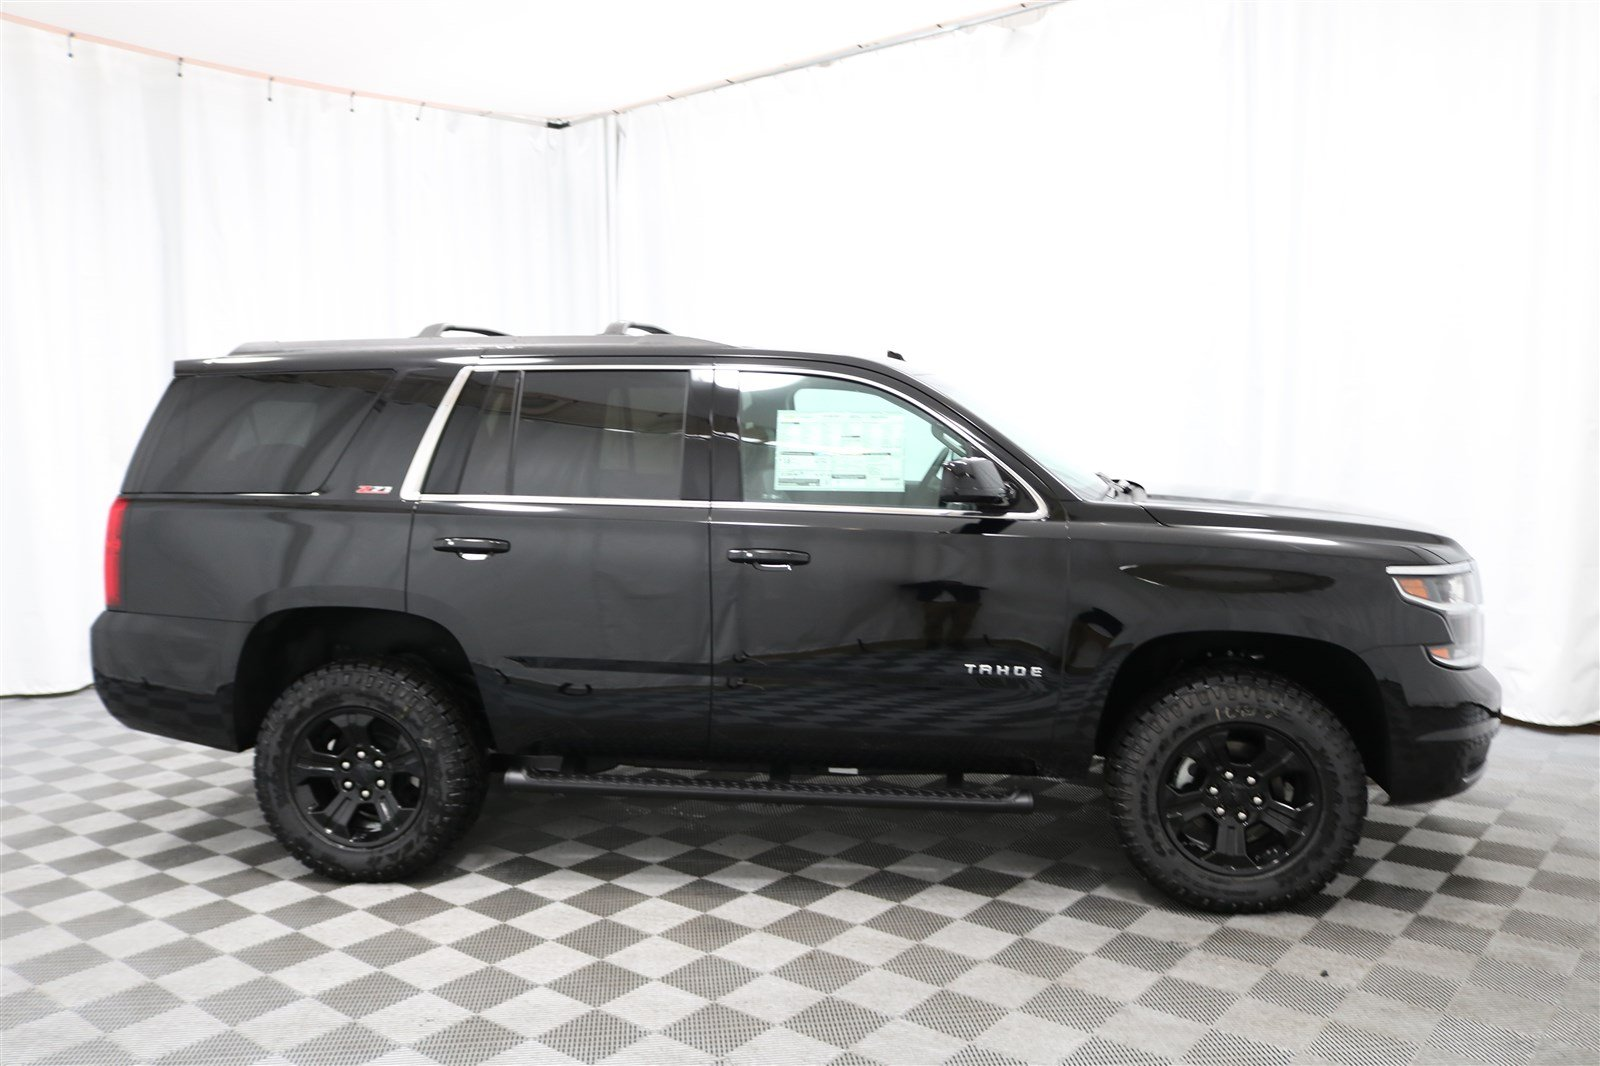 New 2018 Chevrolet Tahoe LT 4x4 SUV In Wichita #CT5427